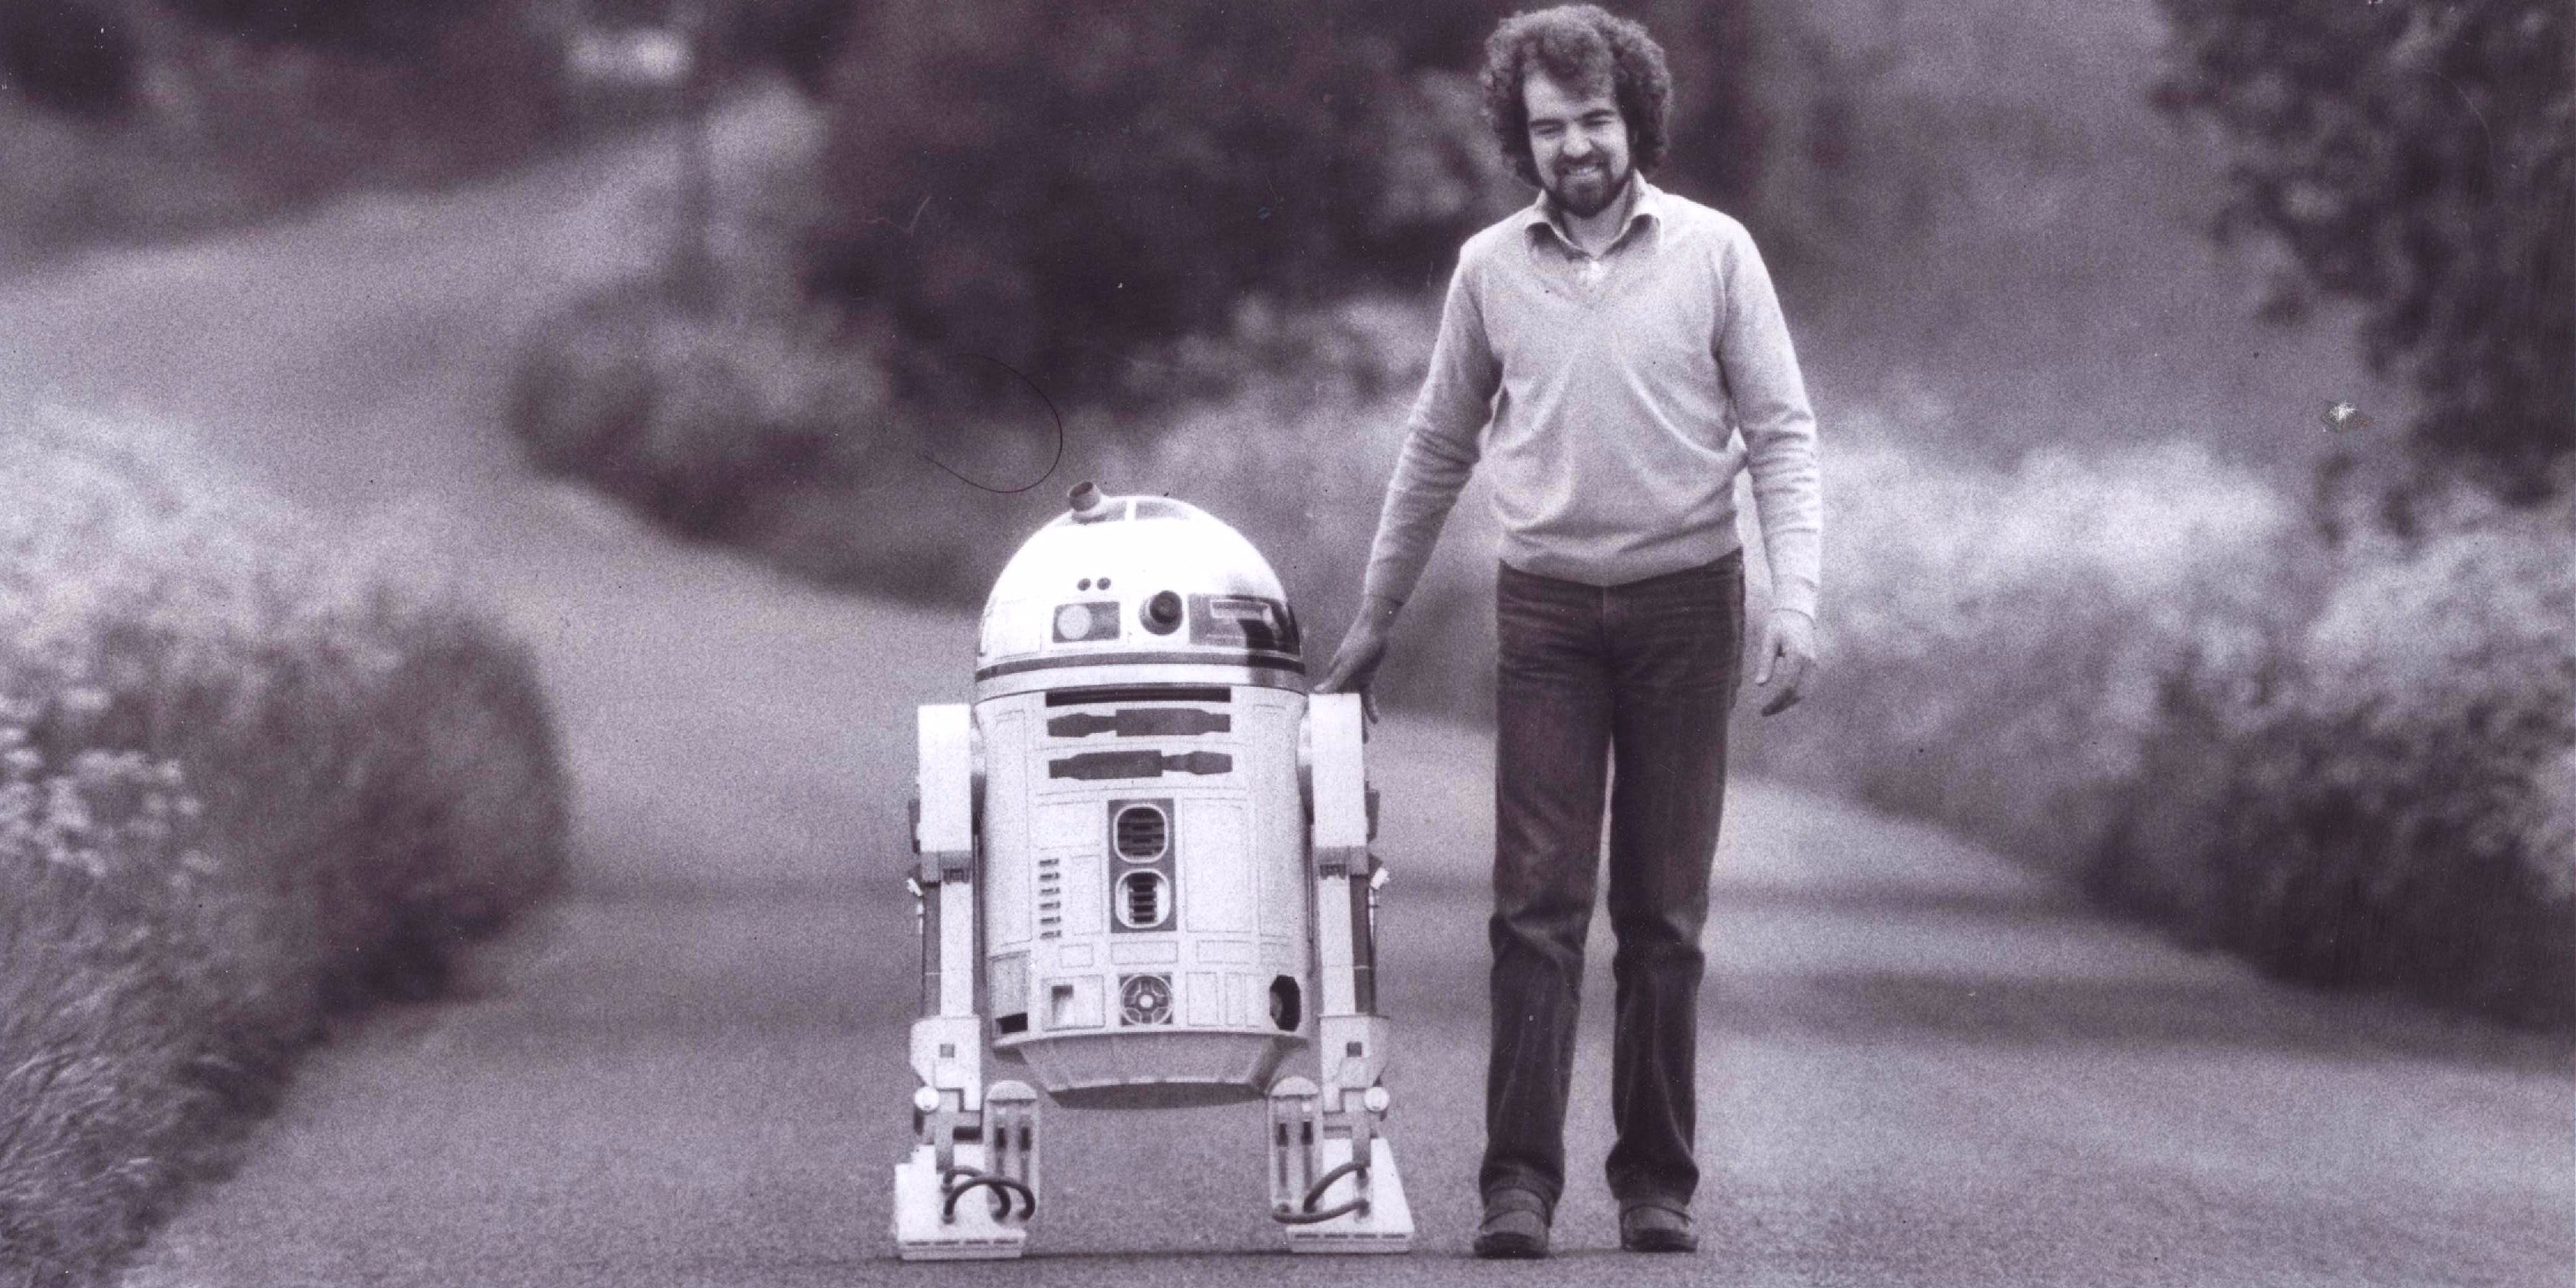 R2D2 inventor Tony Dyson has passed away